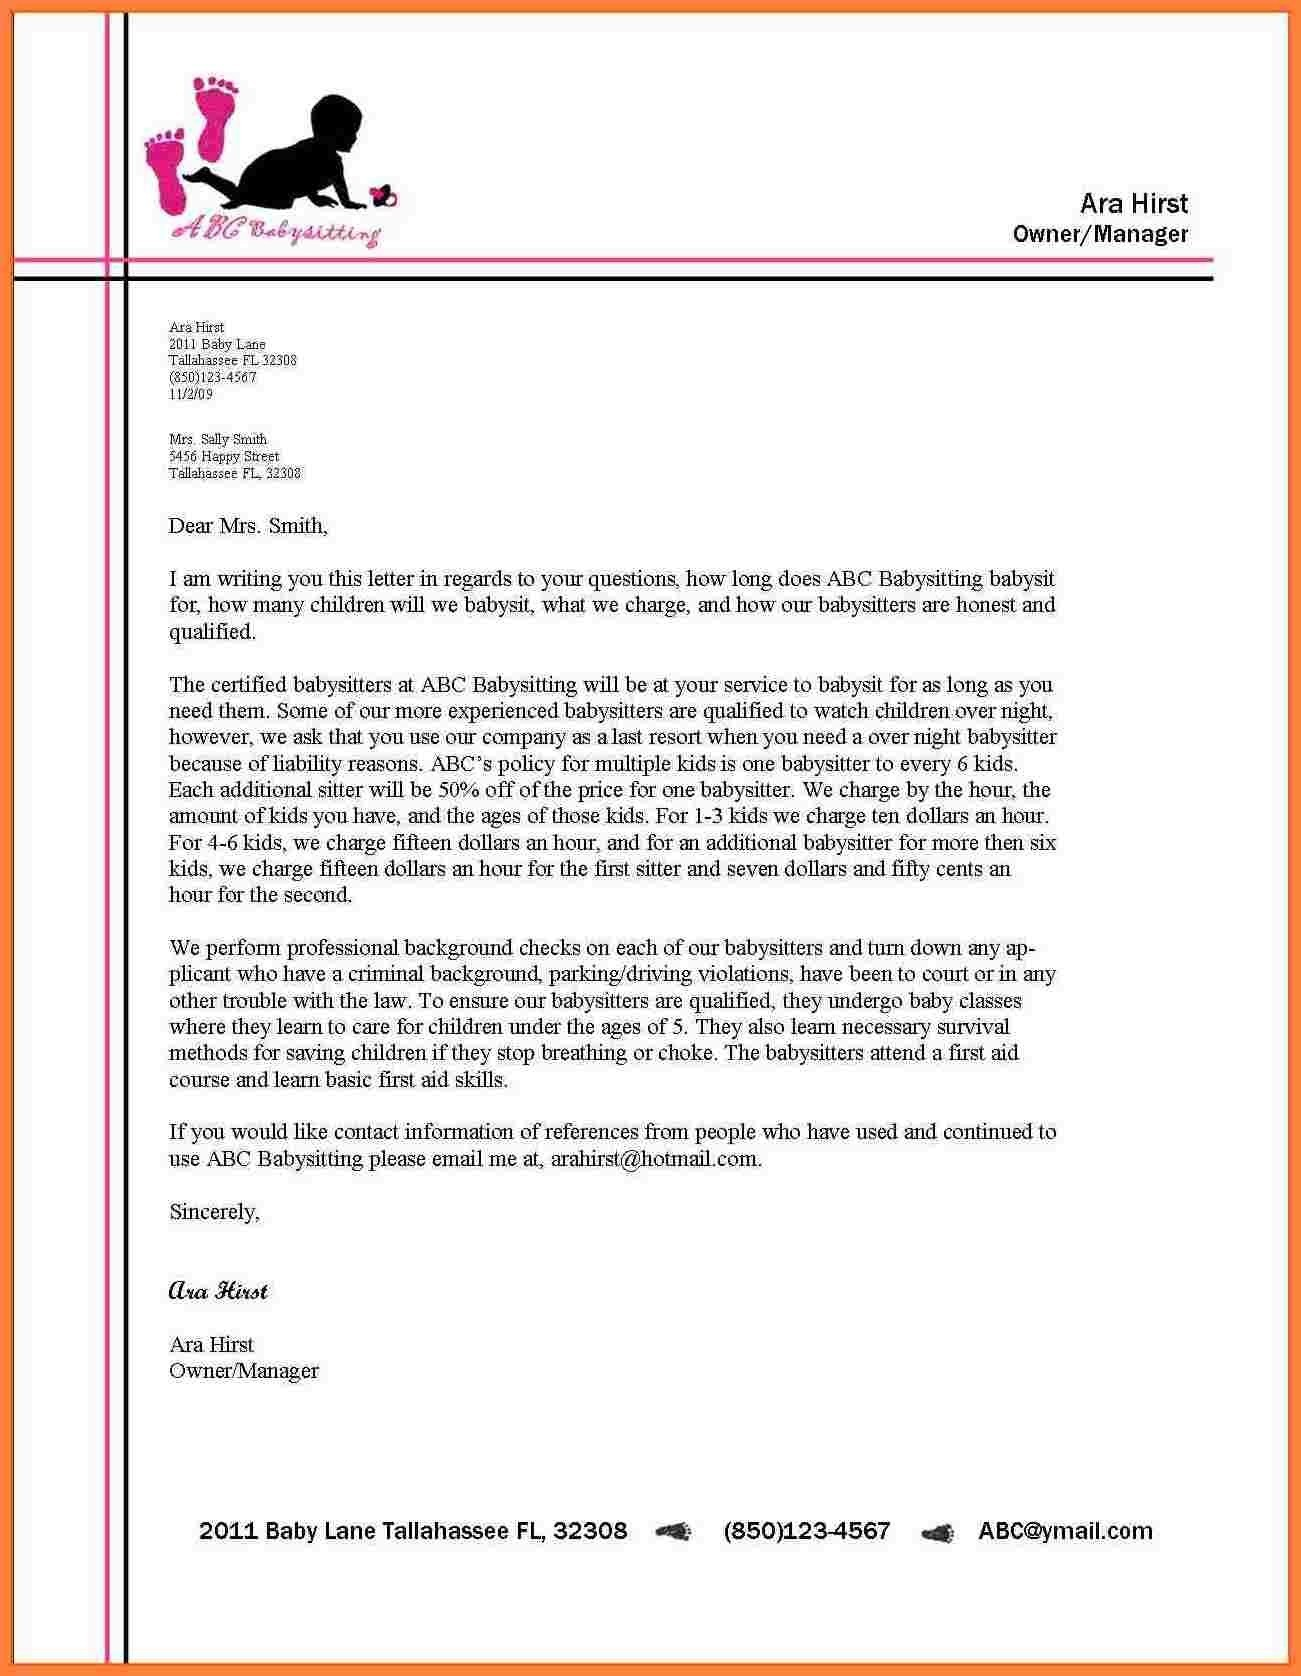 Letter Format With Letterhead Scrumps